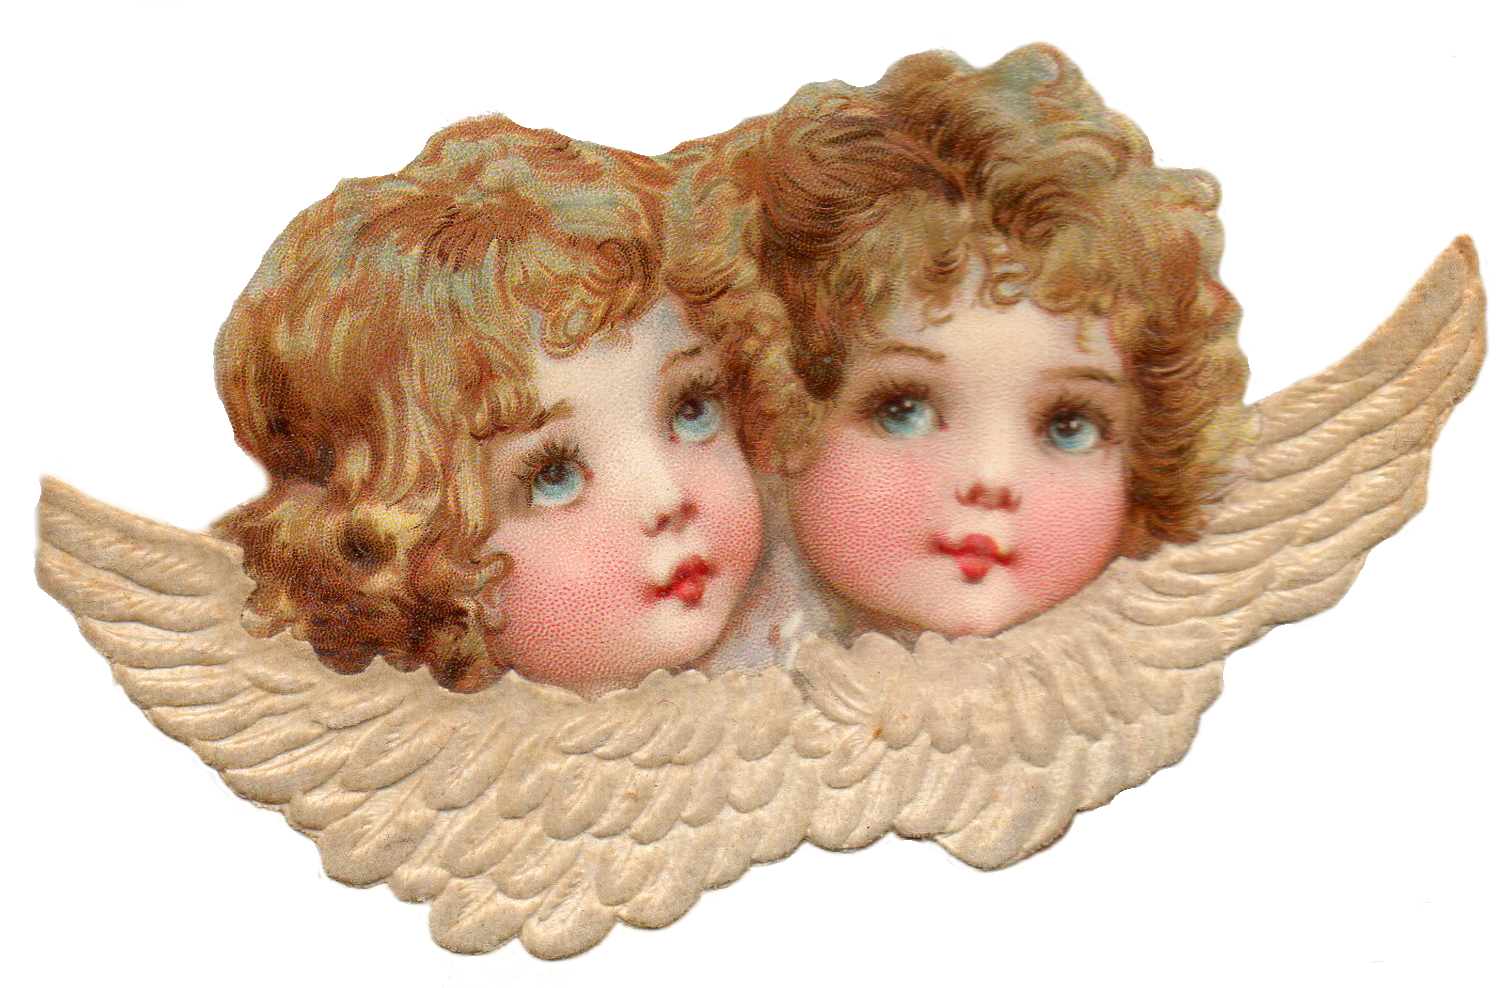 Leaping Frog Designs Cherubs Angels Lace Free Png Image